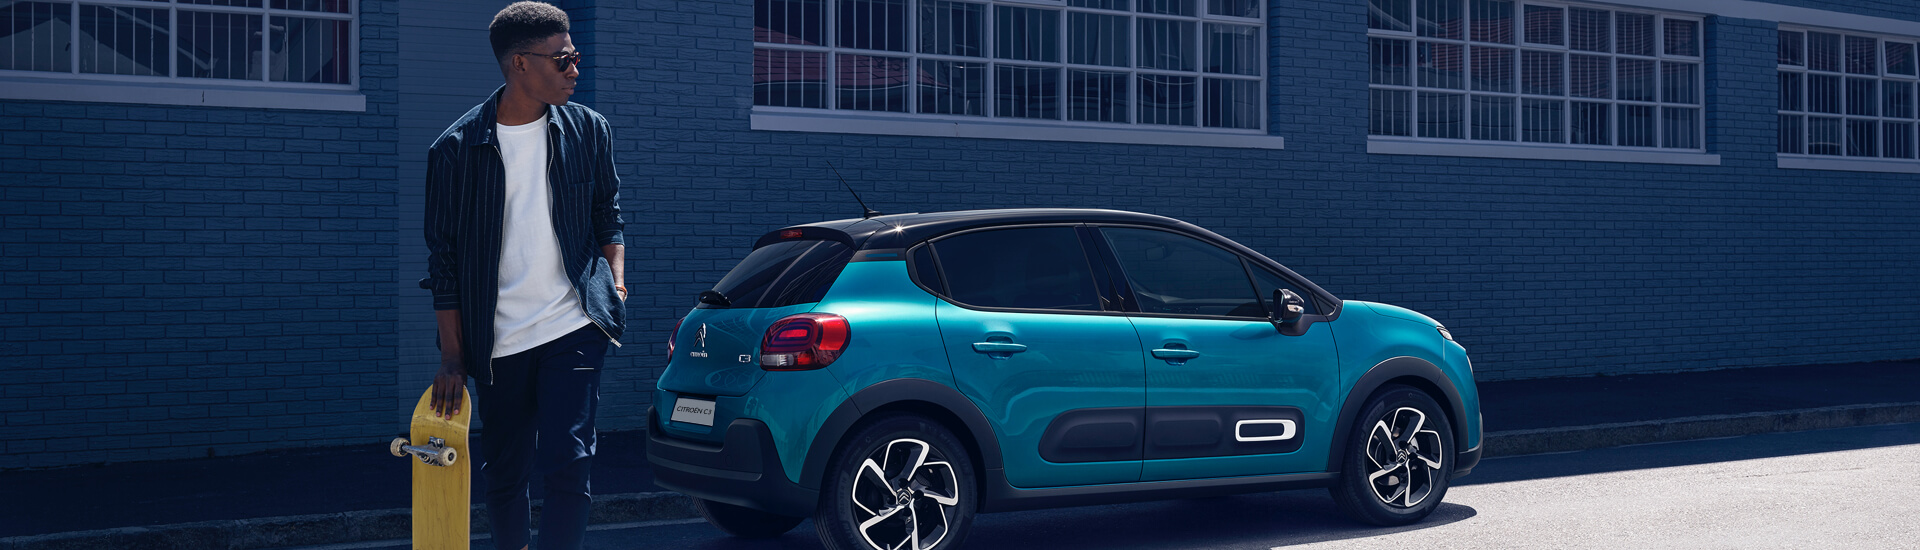 Latest Citroen new Offers